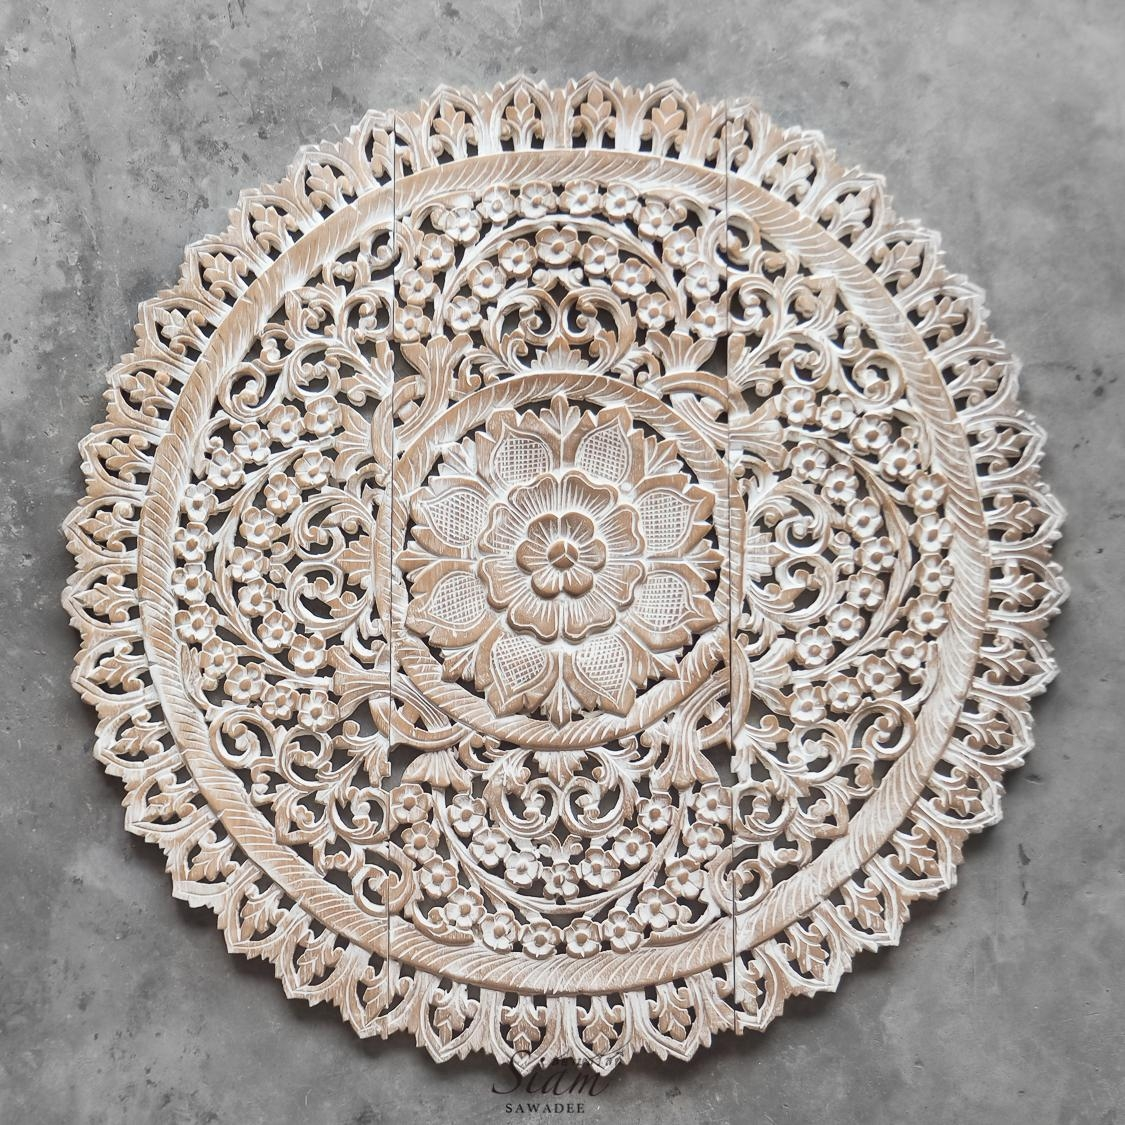 Mandala Wood Carving Wall Panel Decor u2013 Siam Sawadee With Wood Carved Wall Art Panels (  sc 1 st  tany.net & 20 Photos Wood Carved Wall Art Panels | Wall Art Ideas